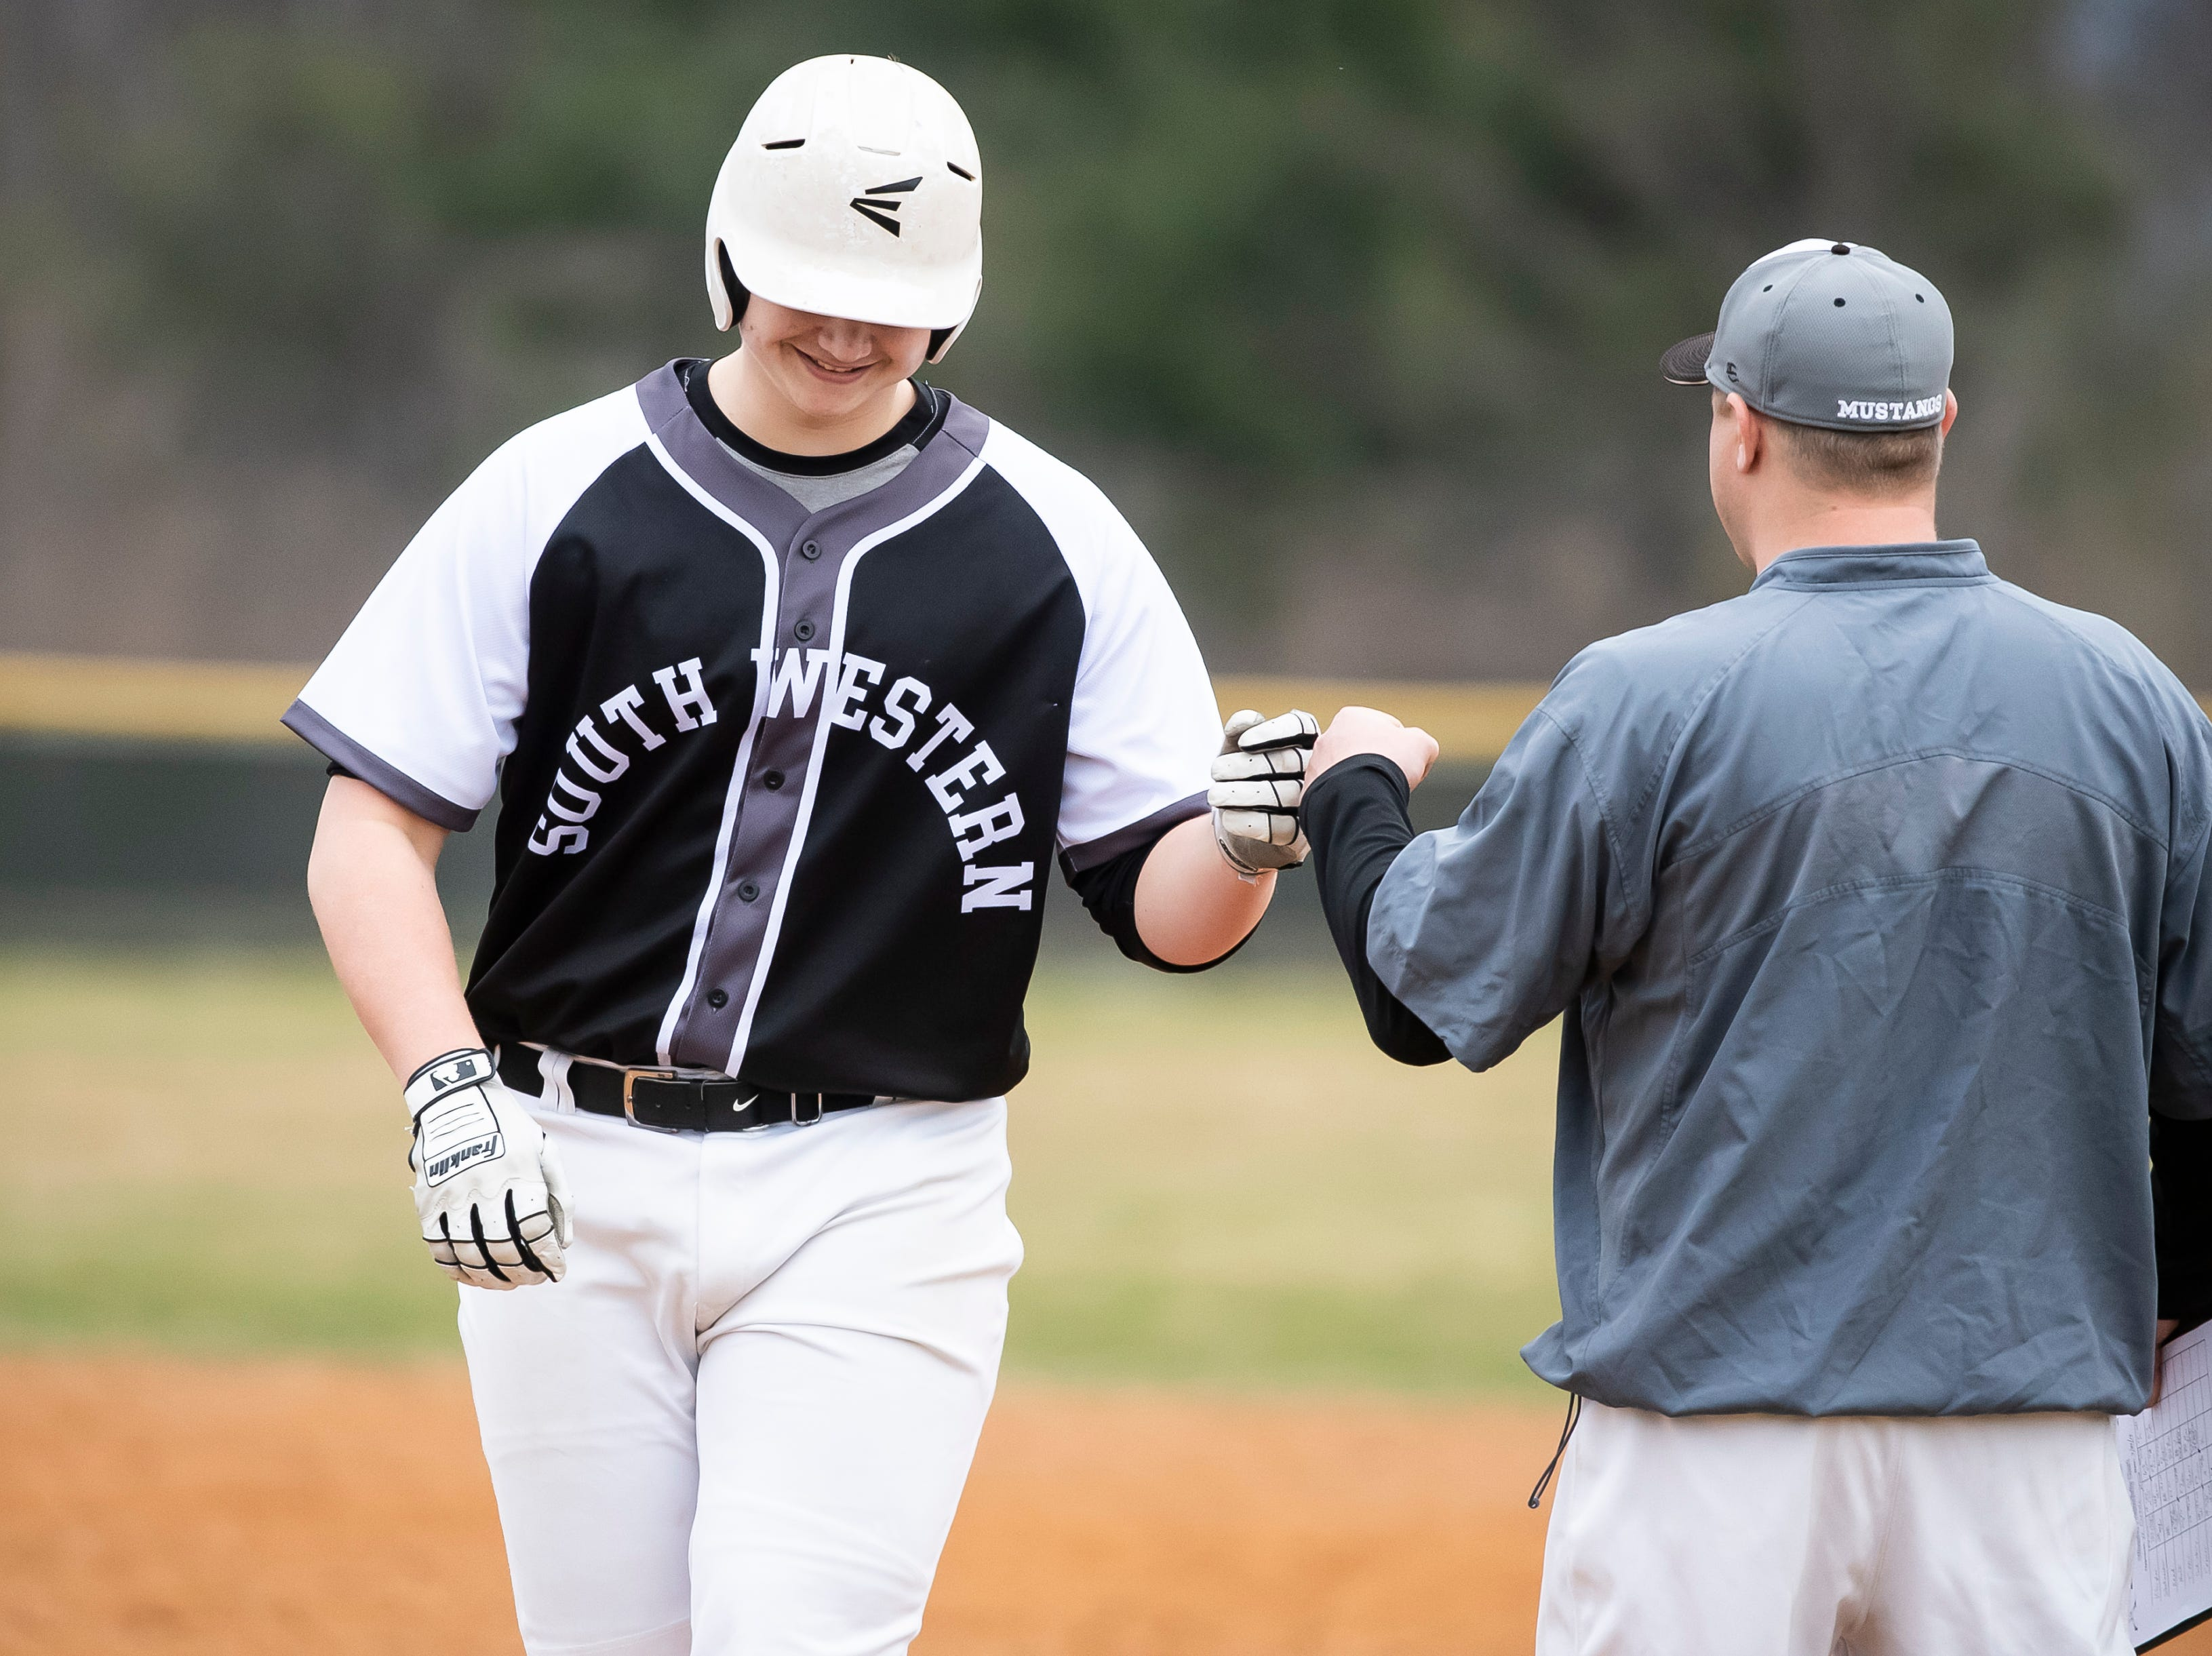 South Western's Zack Reed fist bumps assistant coach Nate Brodbeck after getting on base during a game against Carlisle in Hanover on Friday, March 29, 2019. The Mustangs won 11-9.